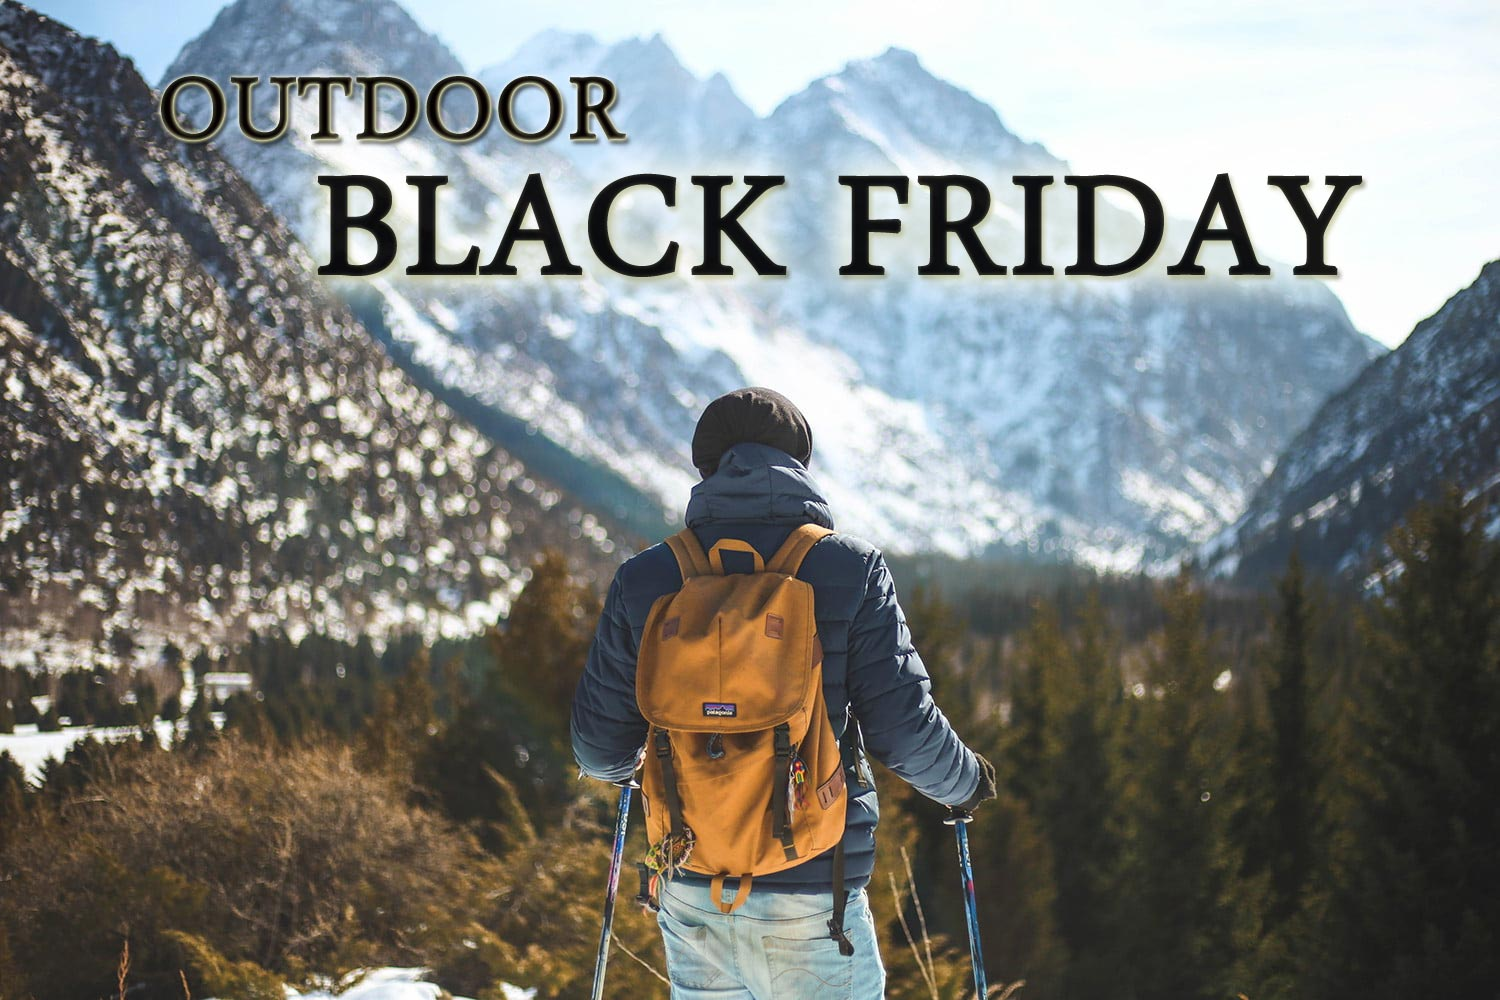 7 ofertones outdoor del Black Friday